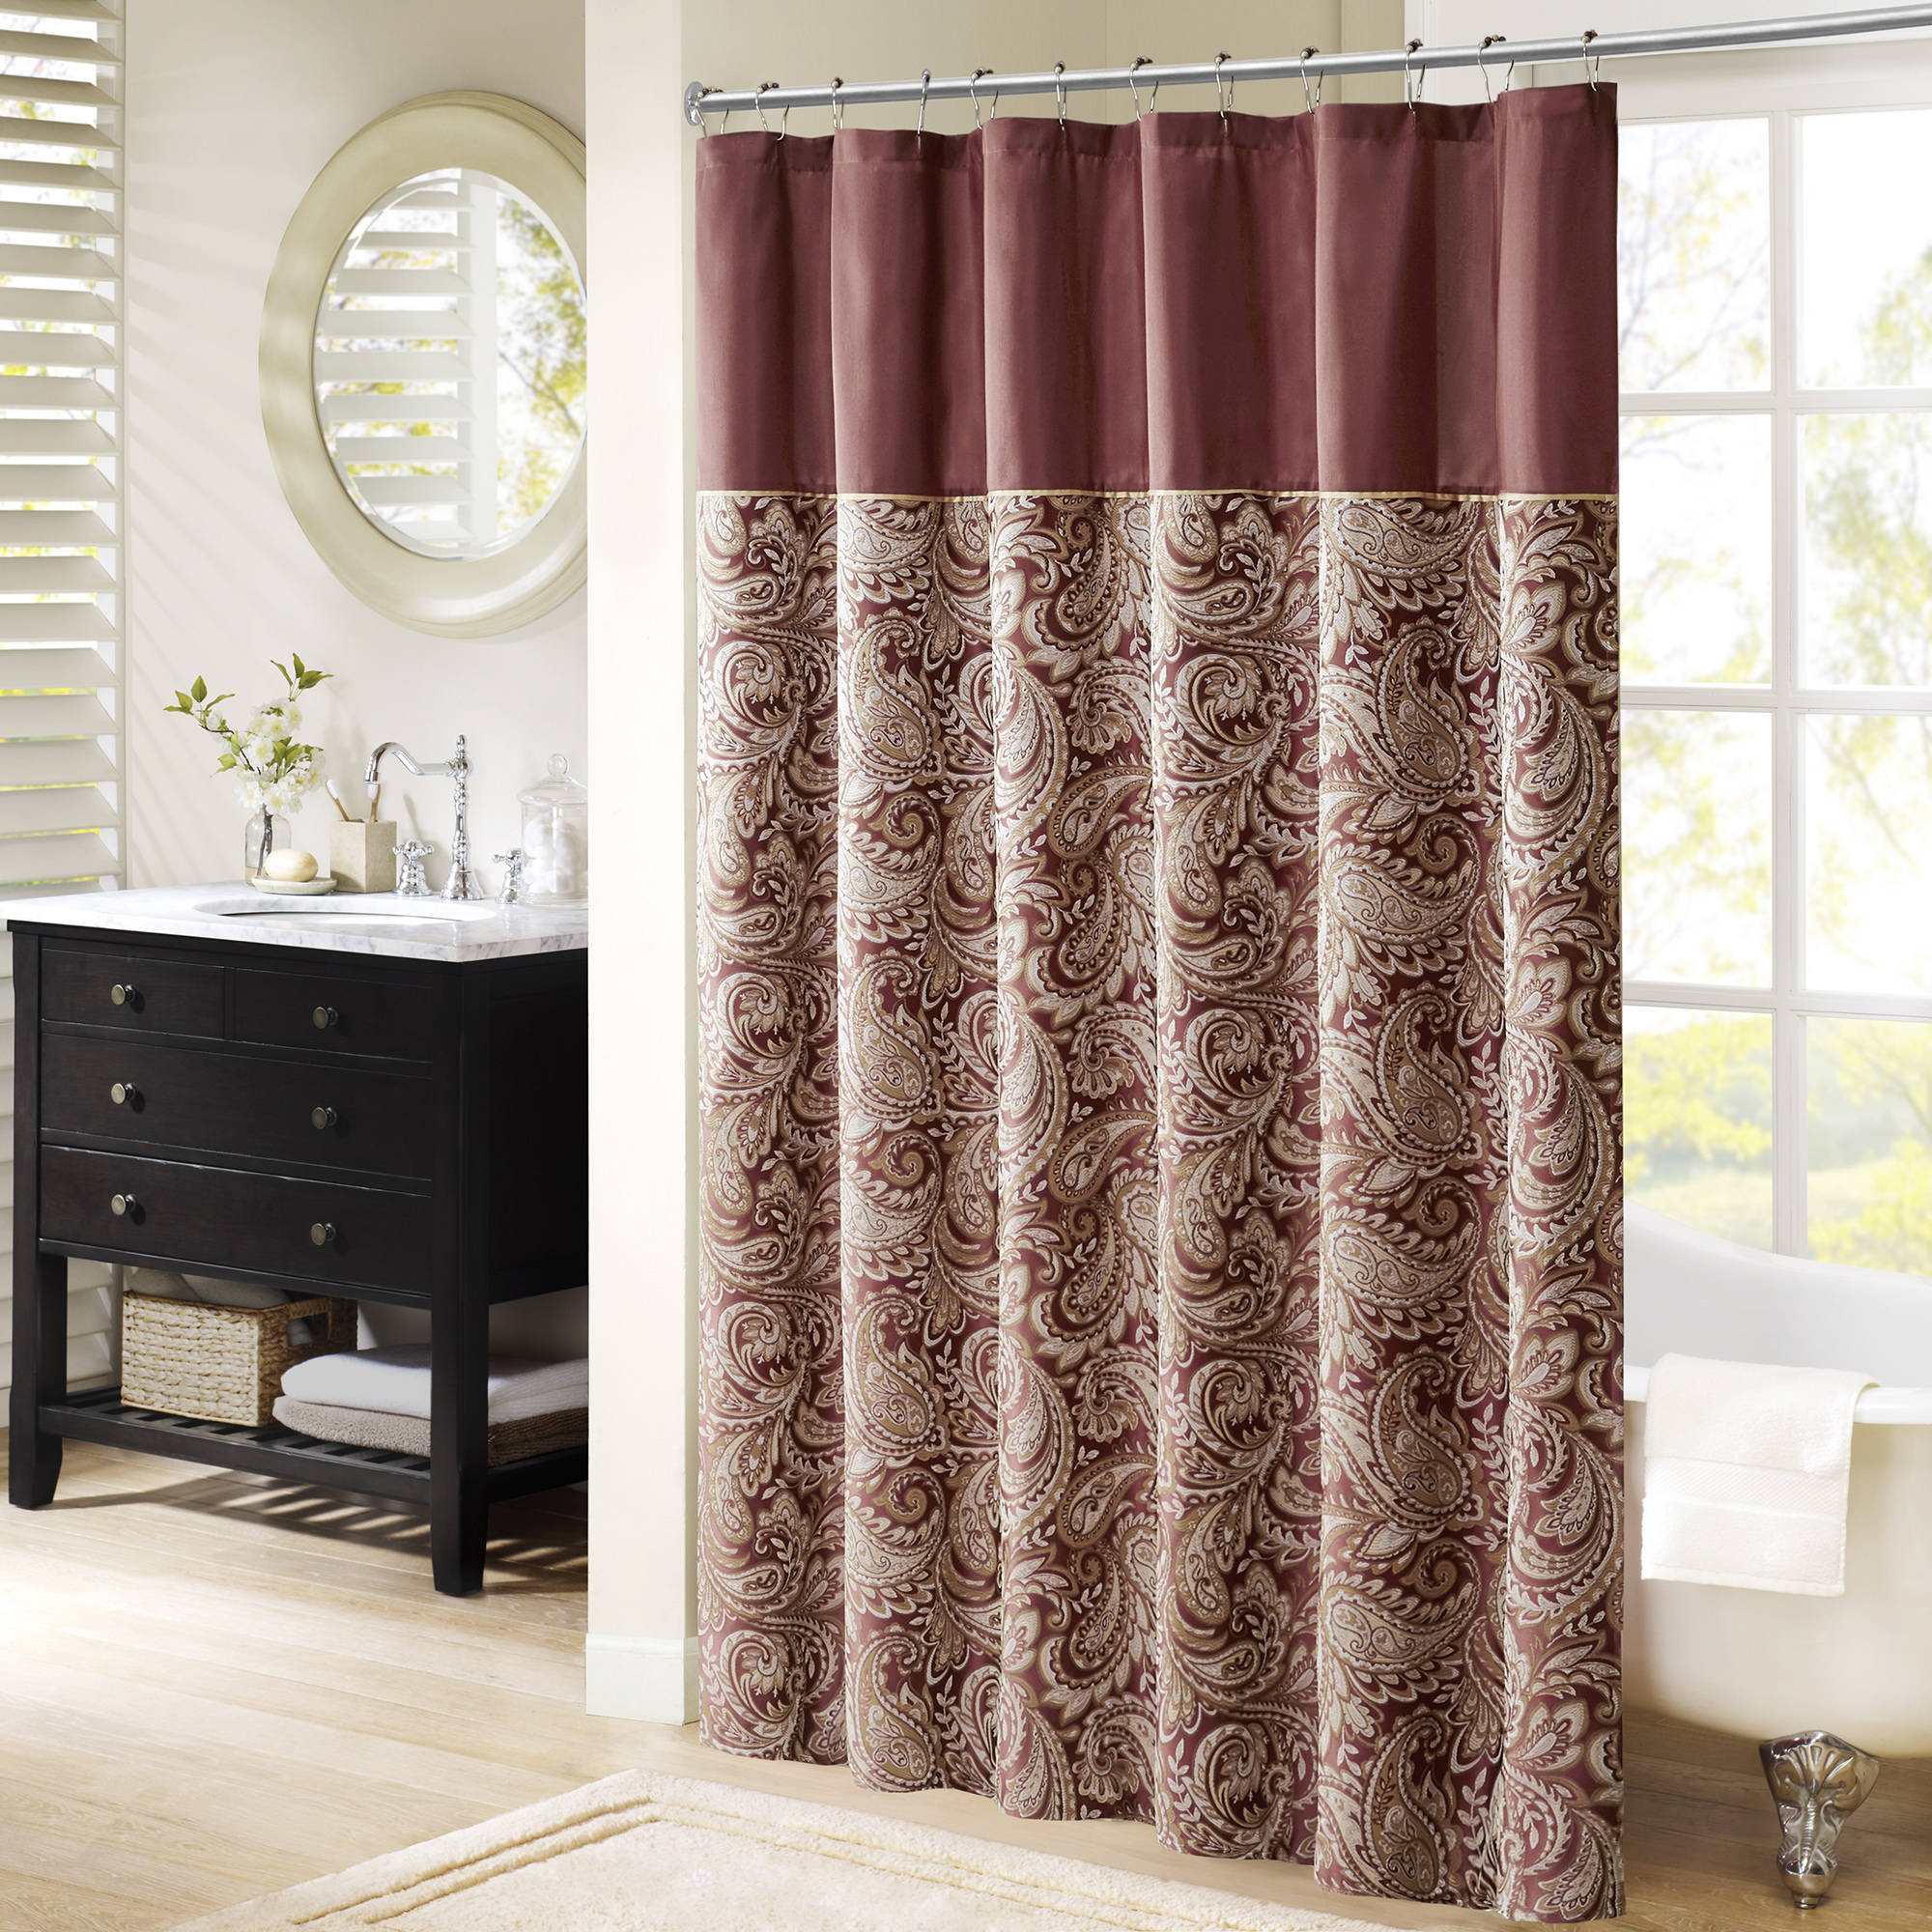 Red White And Blue Shower Curtain. Shower Curtains Walmart throughout size 2000 X Red White And Blue Curtain Hooks  Ideas